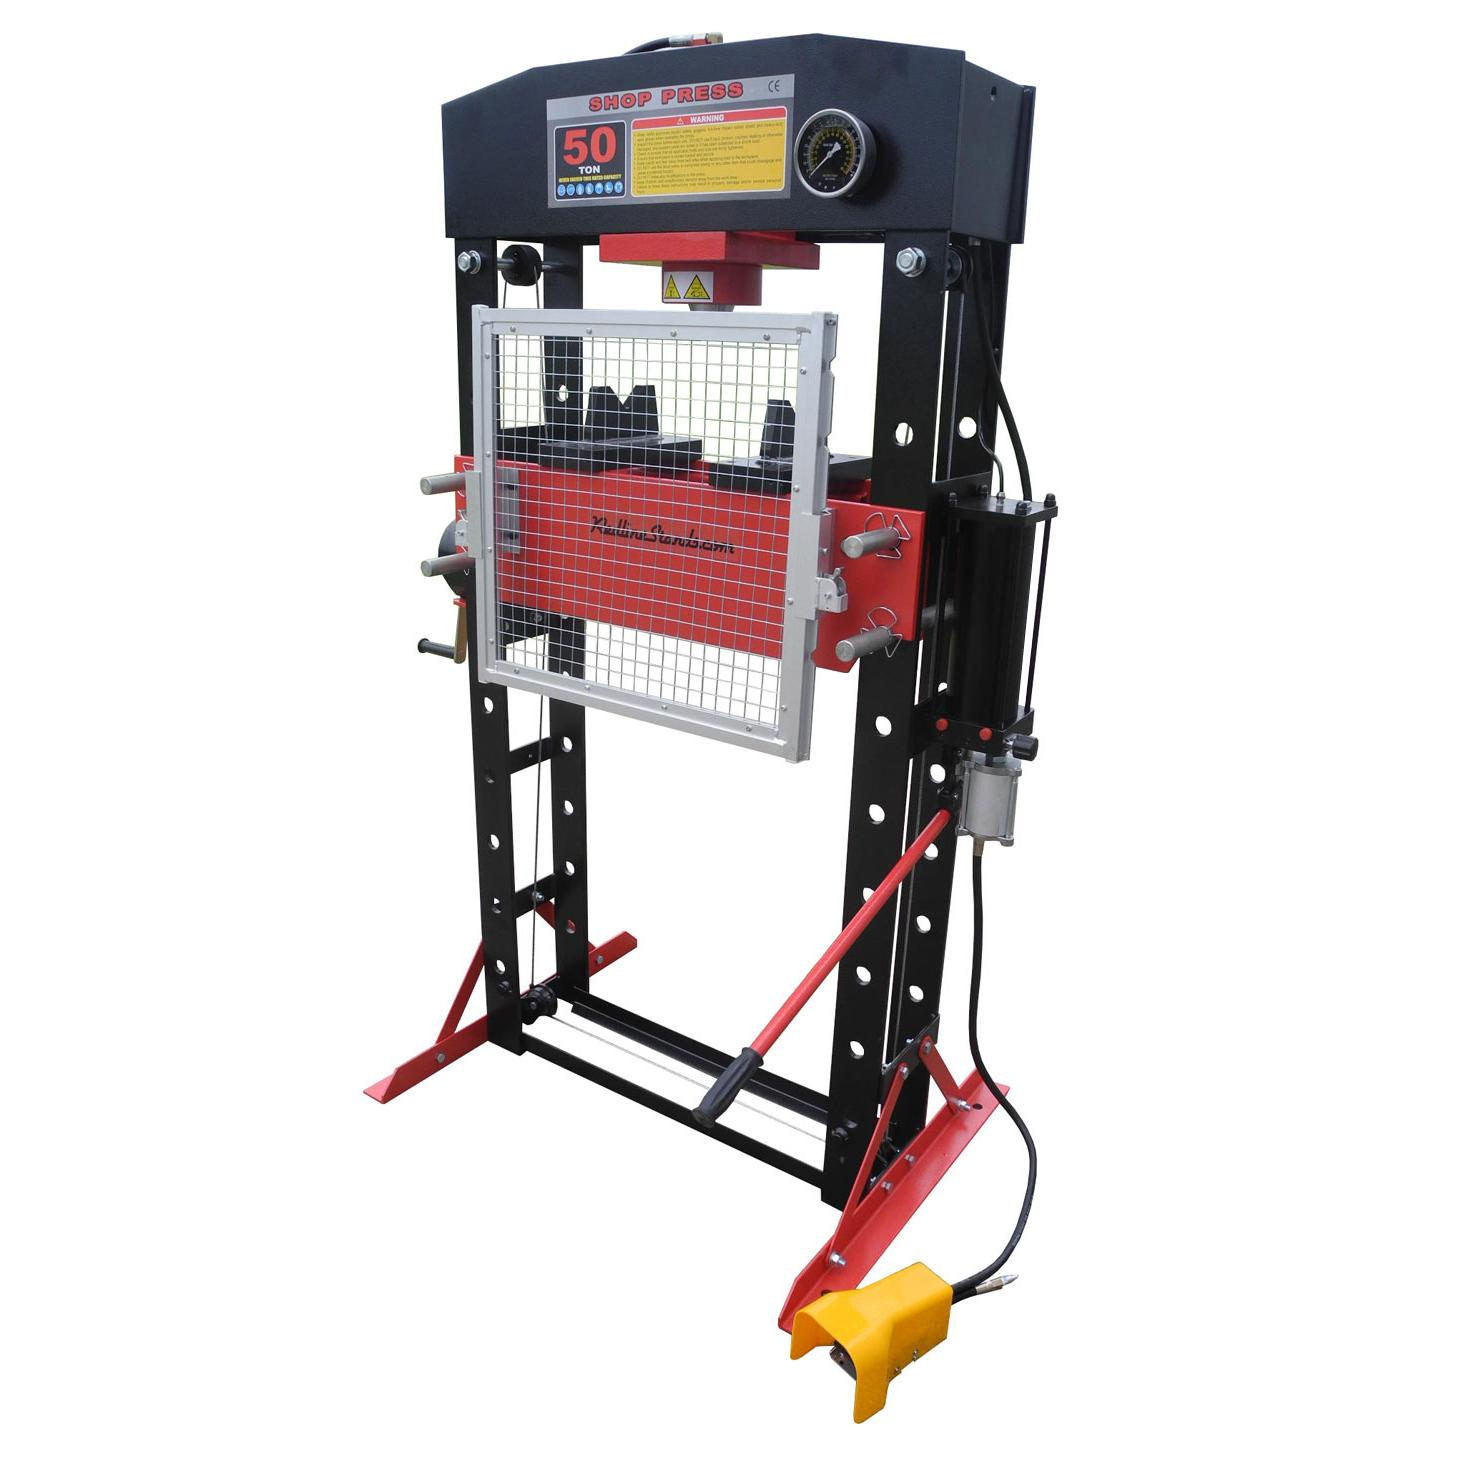 Redline 50 Ton Air Hydraulic Shop Press with FREE PIN KIT